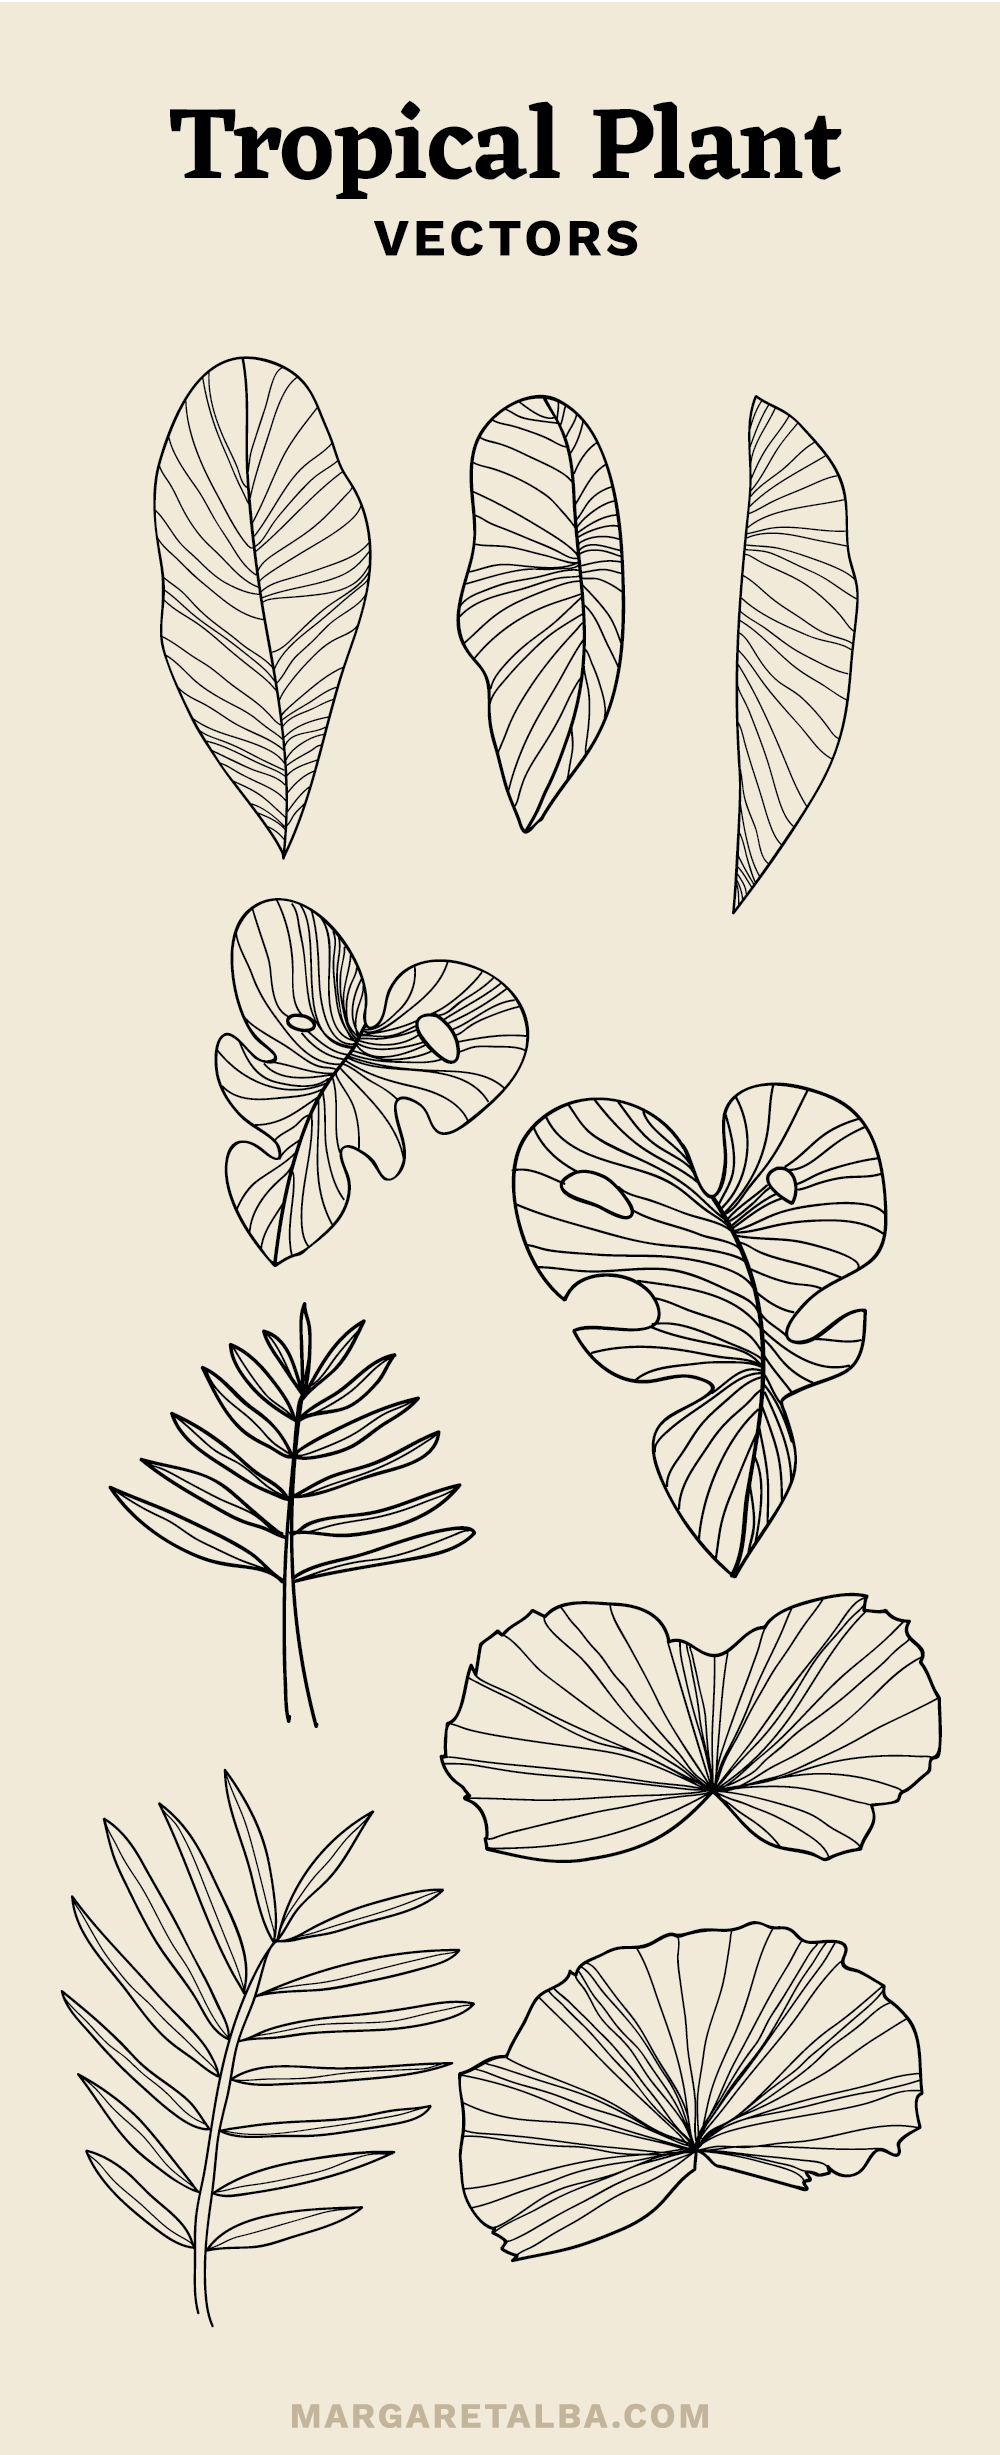 Margaret_Alba_Tropical_Plant_Vector.png